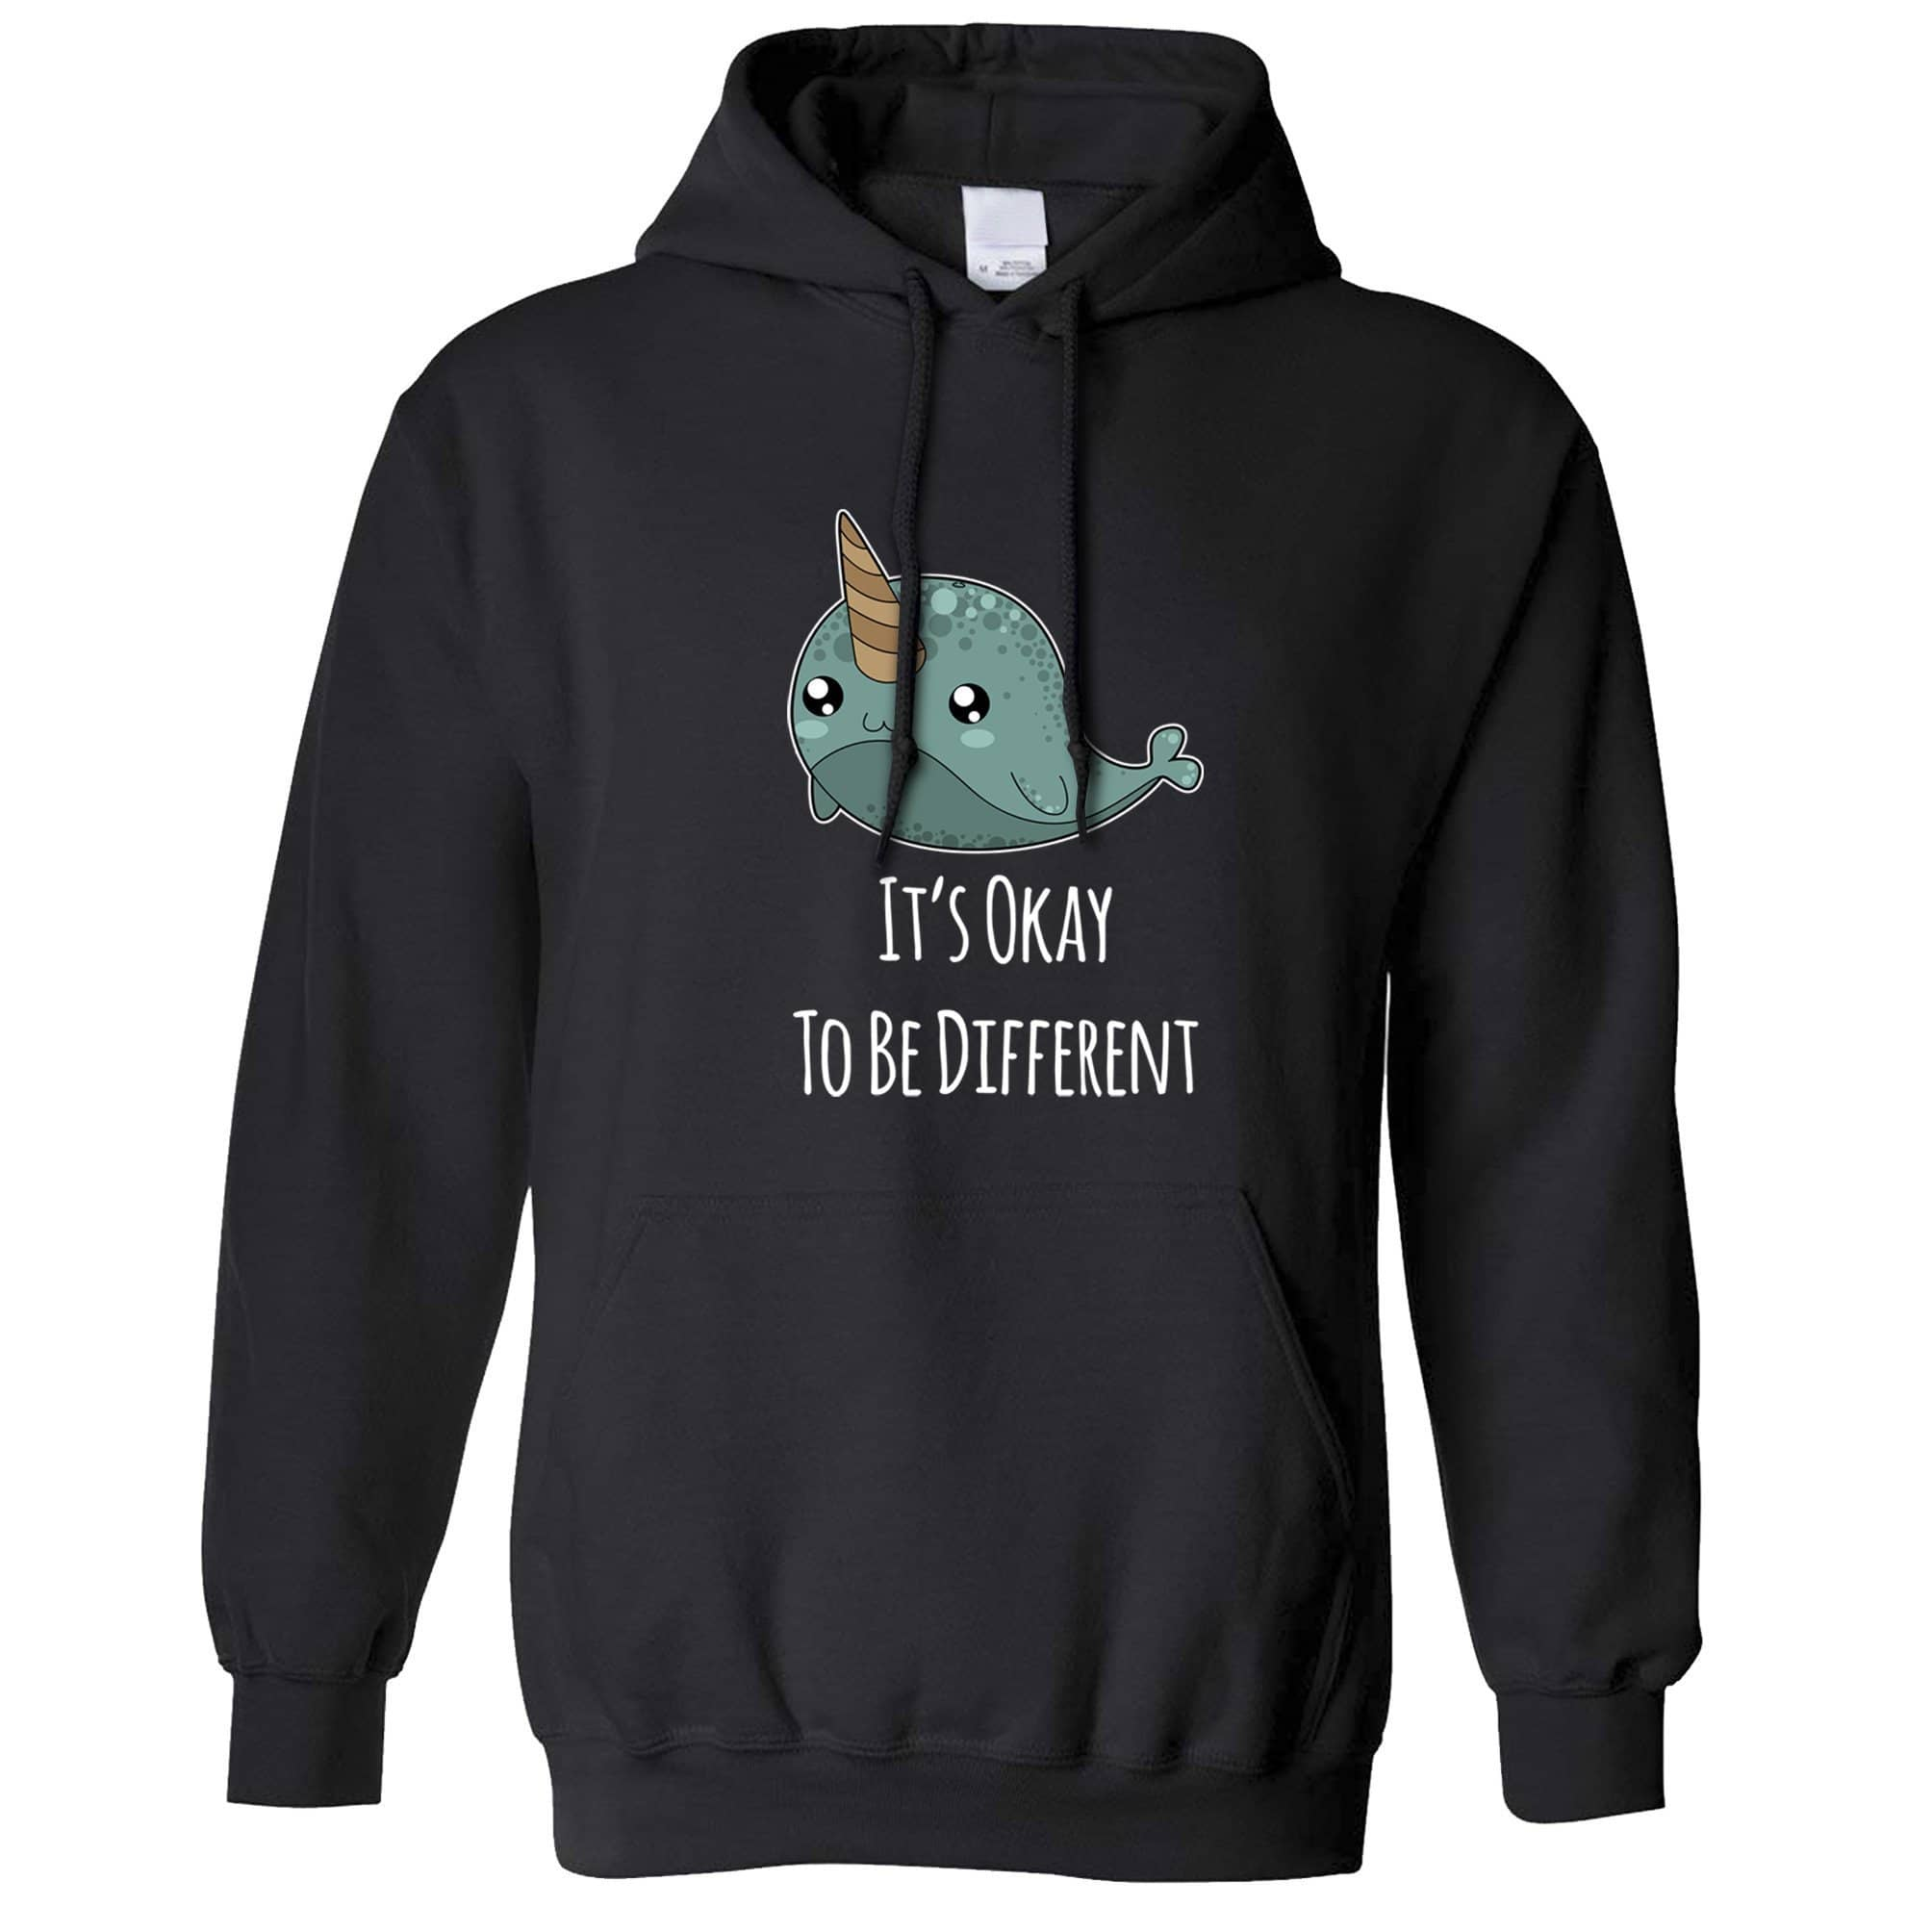 Cute Narwhal Hoodie It's Okay To Be Different Slogan Hooded Jumper